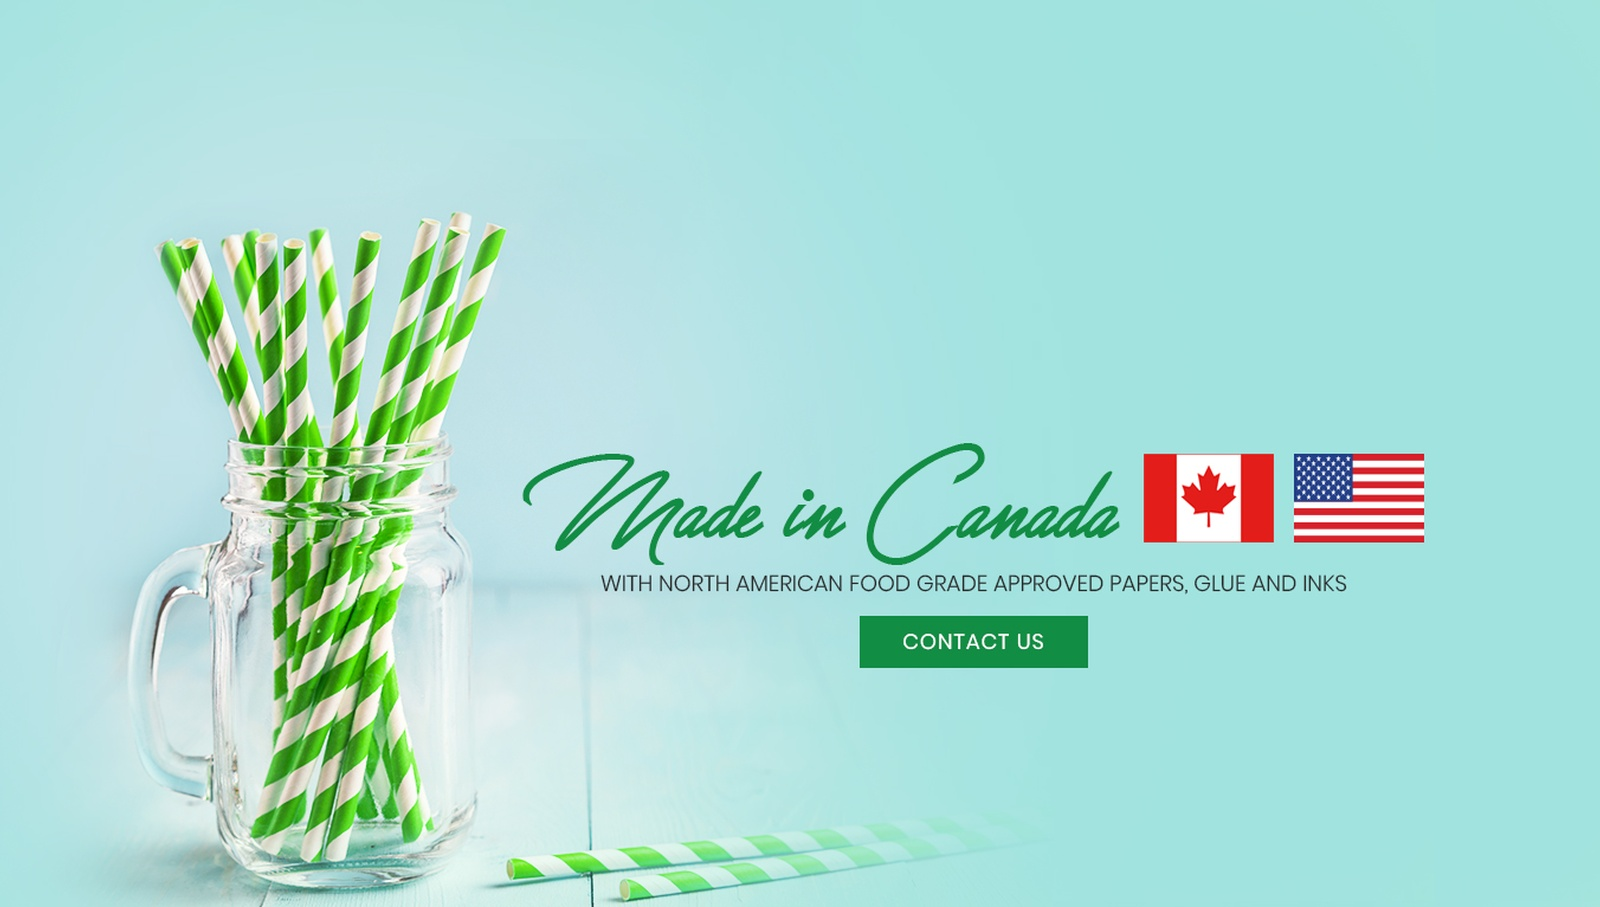 Future Care Packaging Inc. Manufactures Eco-Friendly and Biodegradable Paper Straws for Canada and USA